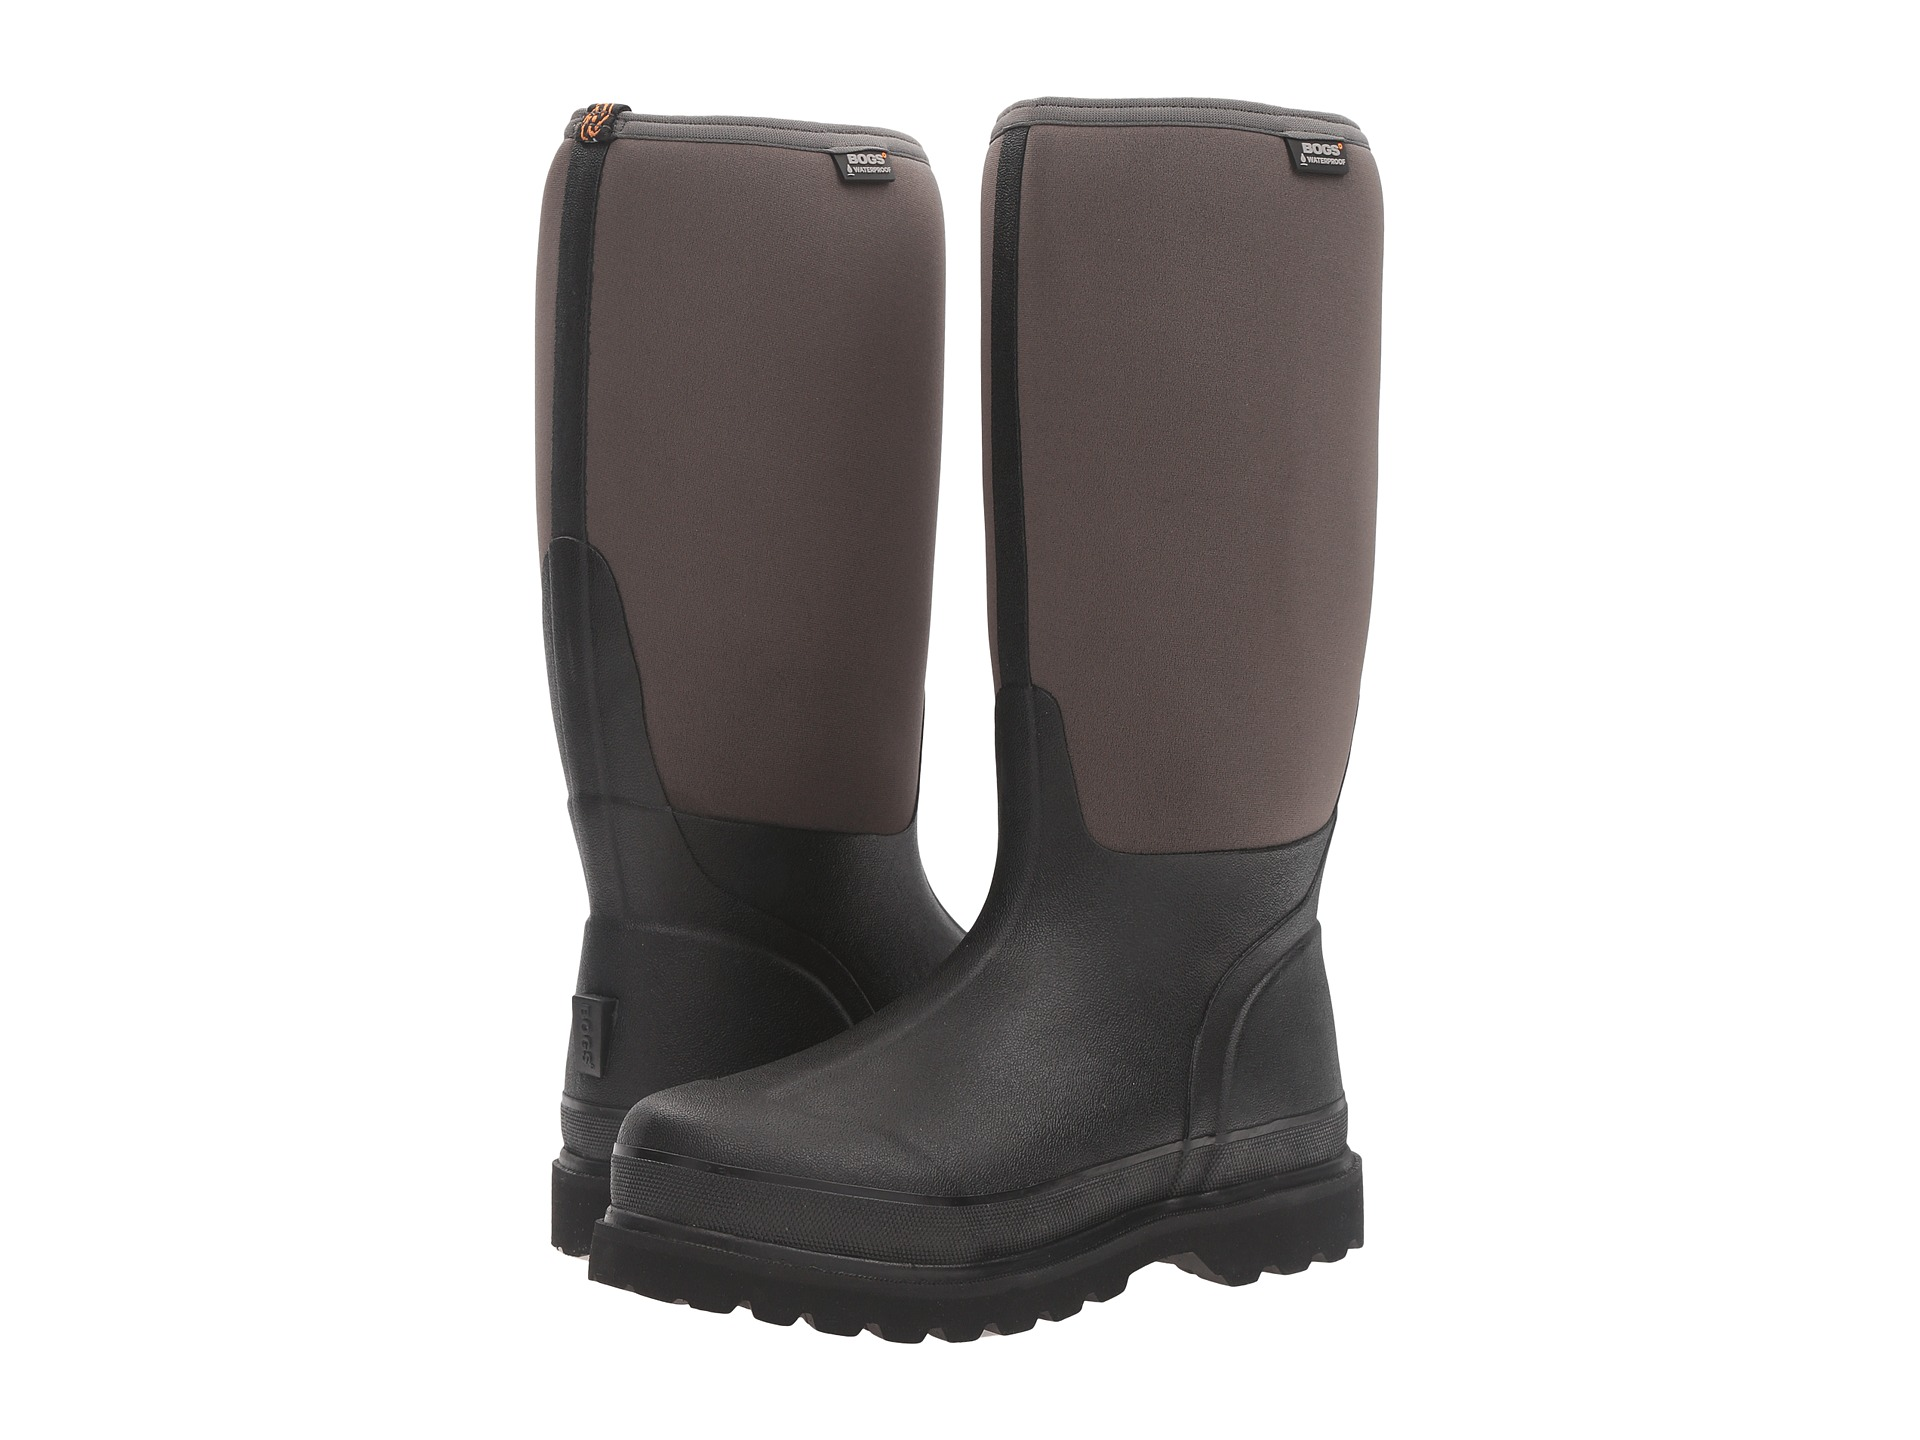 Black Wide Calf Boots, Black | Shipped Free at Zappos